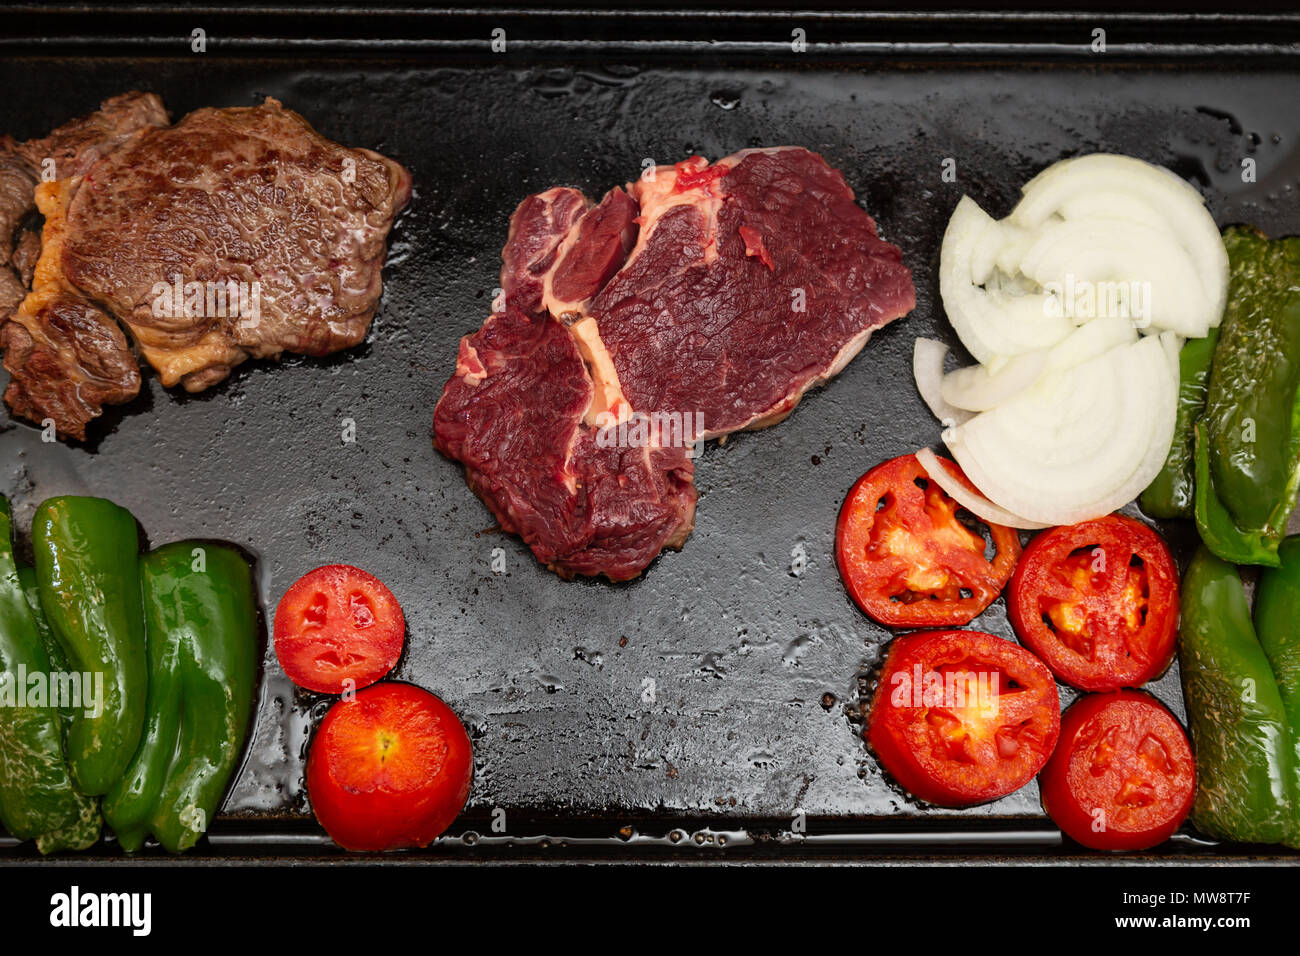 Rib eye steak (Spanish: Bife ancho) raw and grilled, onions, tomatoes and green peppers on a cast iron rectangle griddle plate, flat lay - Stock Image